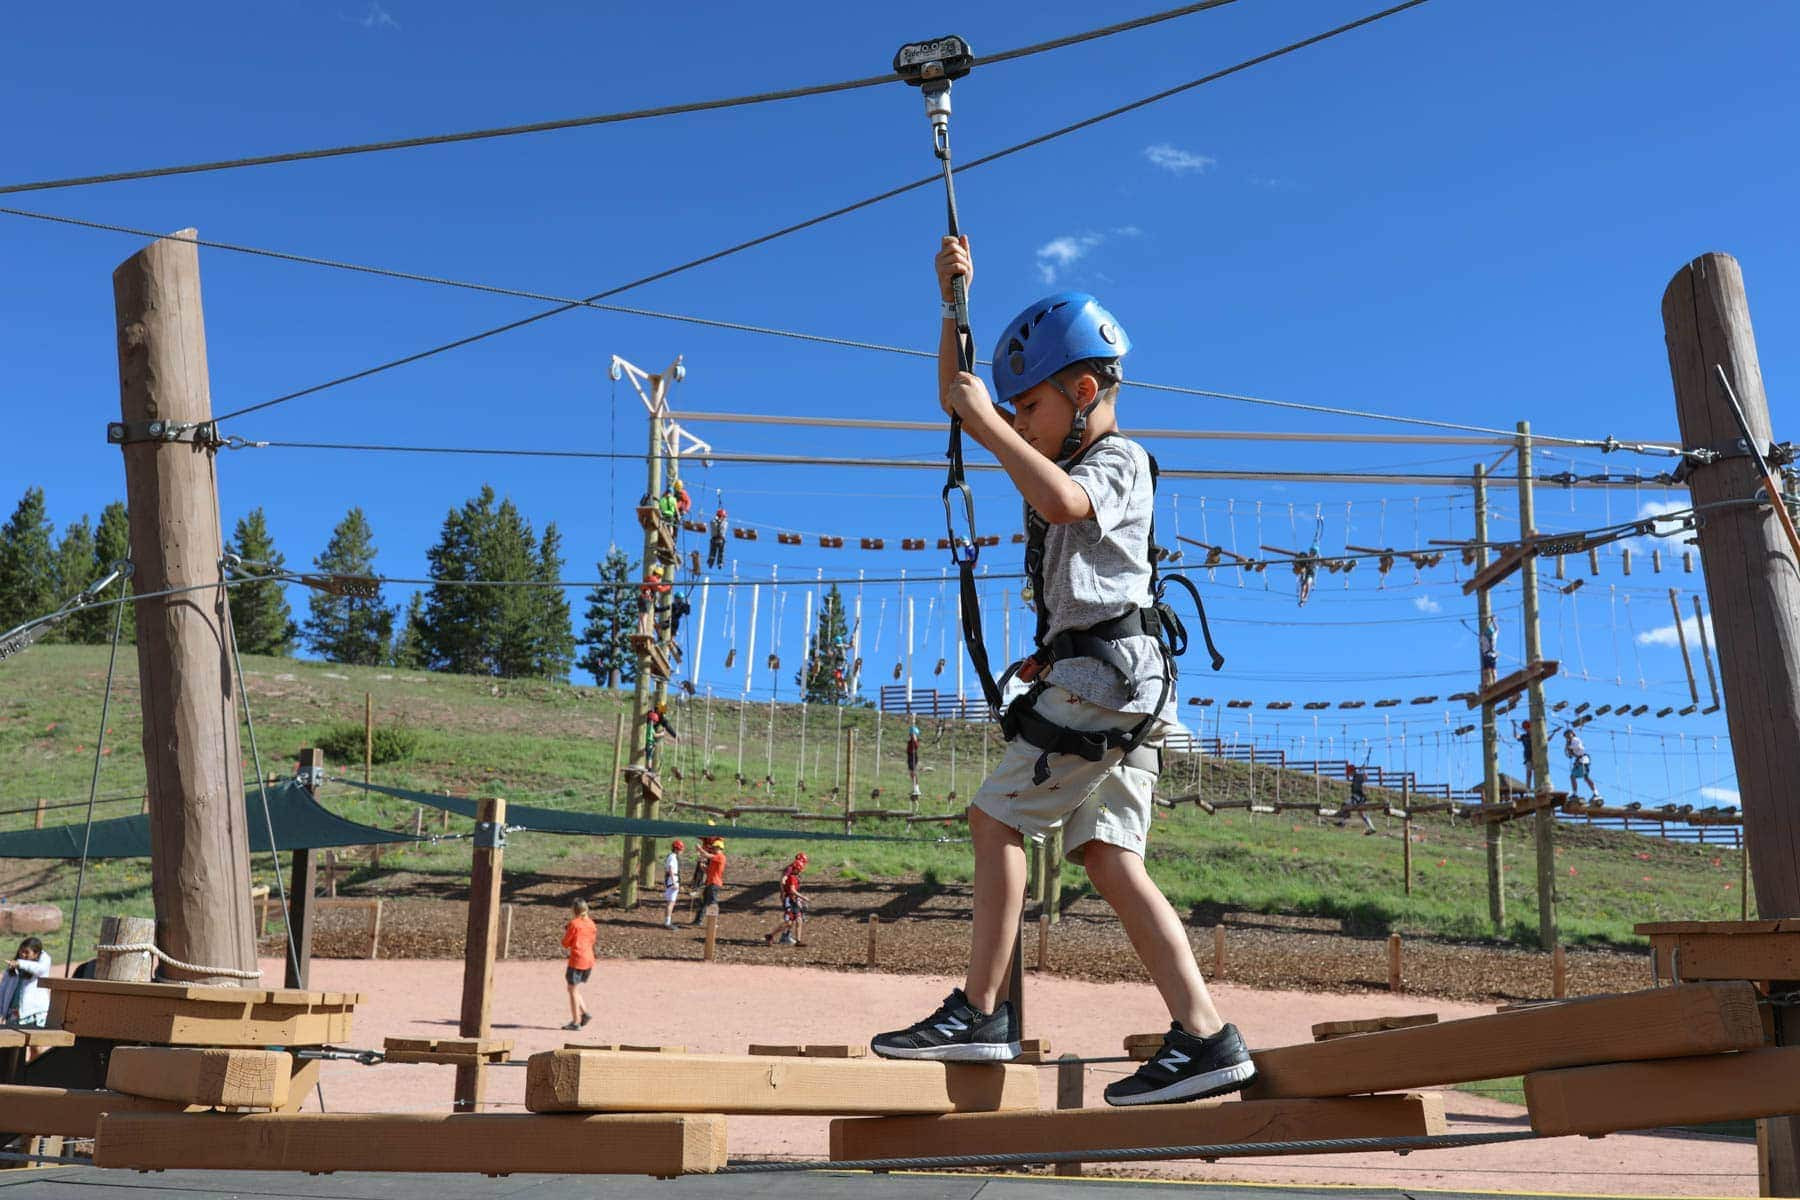 Boy Carefully Holding the Rope #summer #vailcolorado #vacation #citygirlgonemom